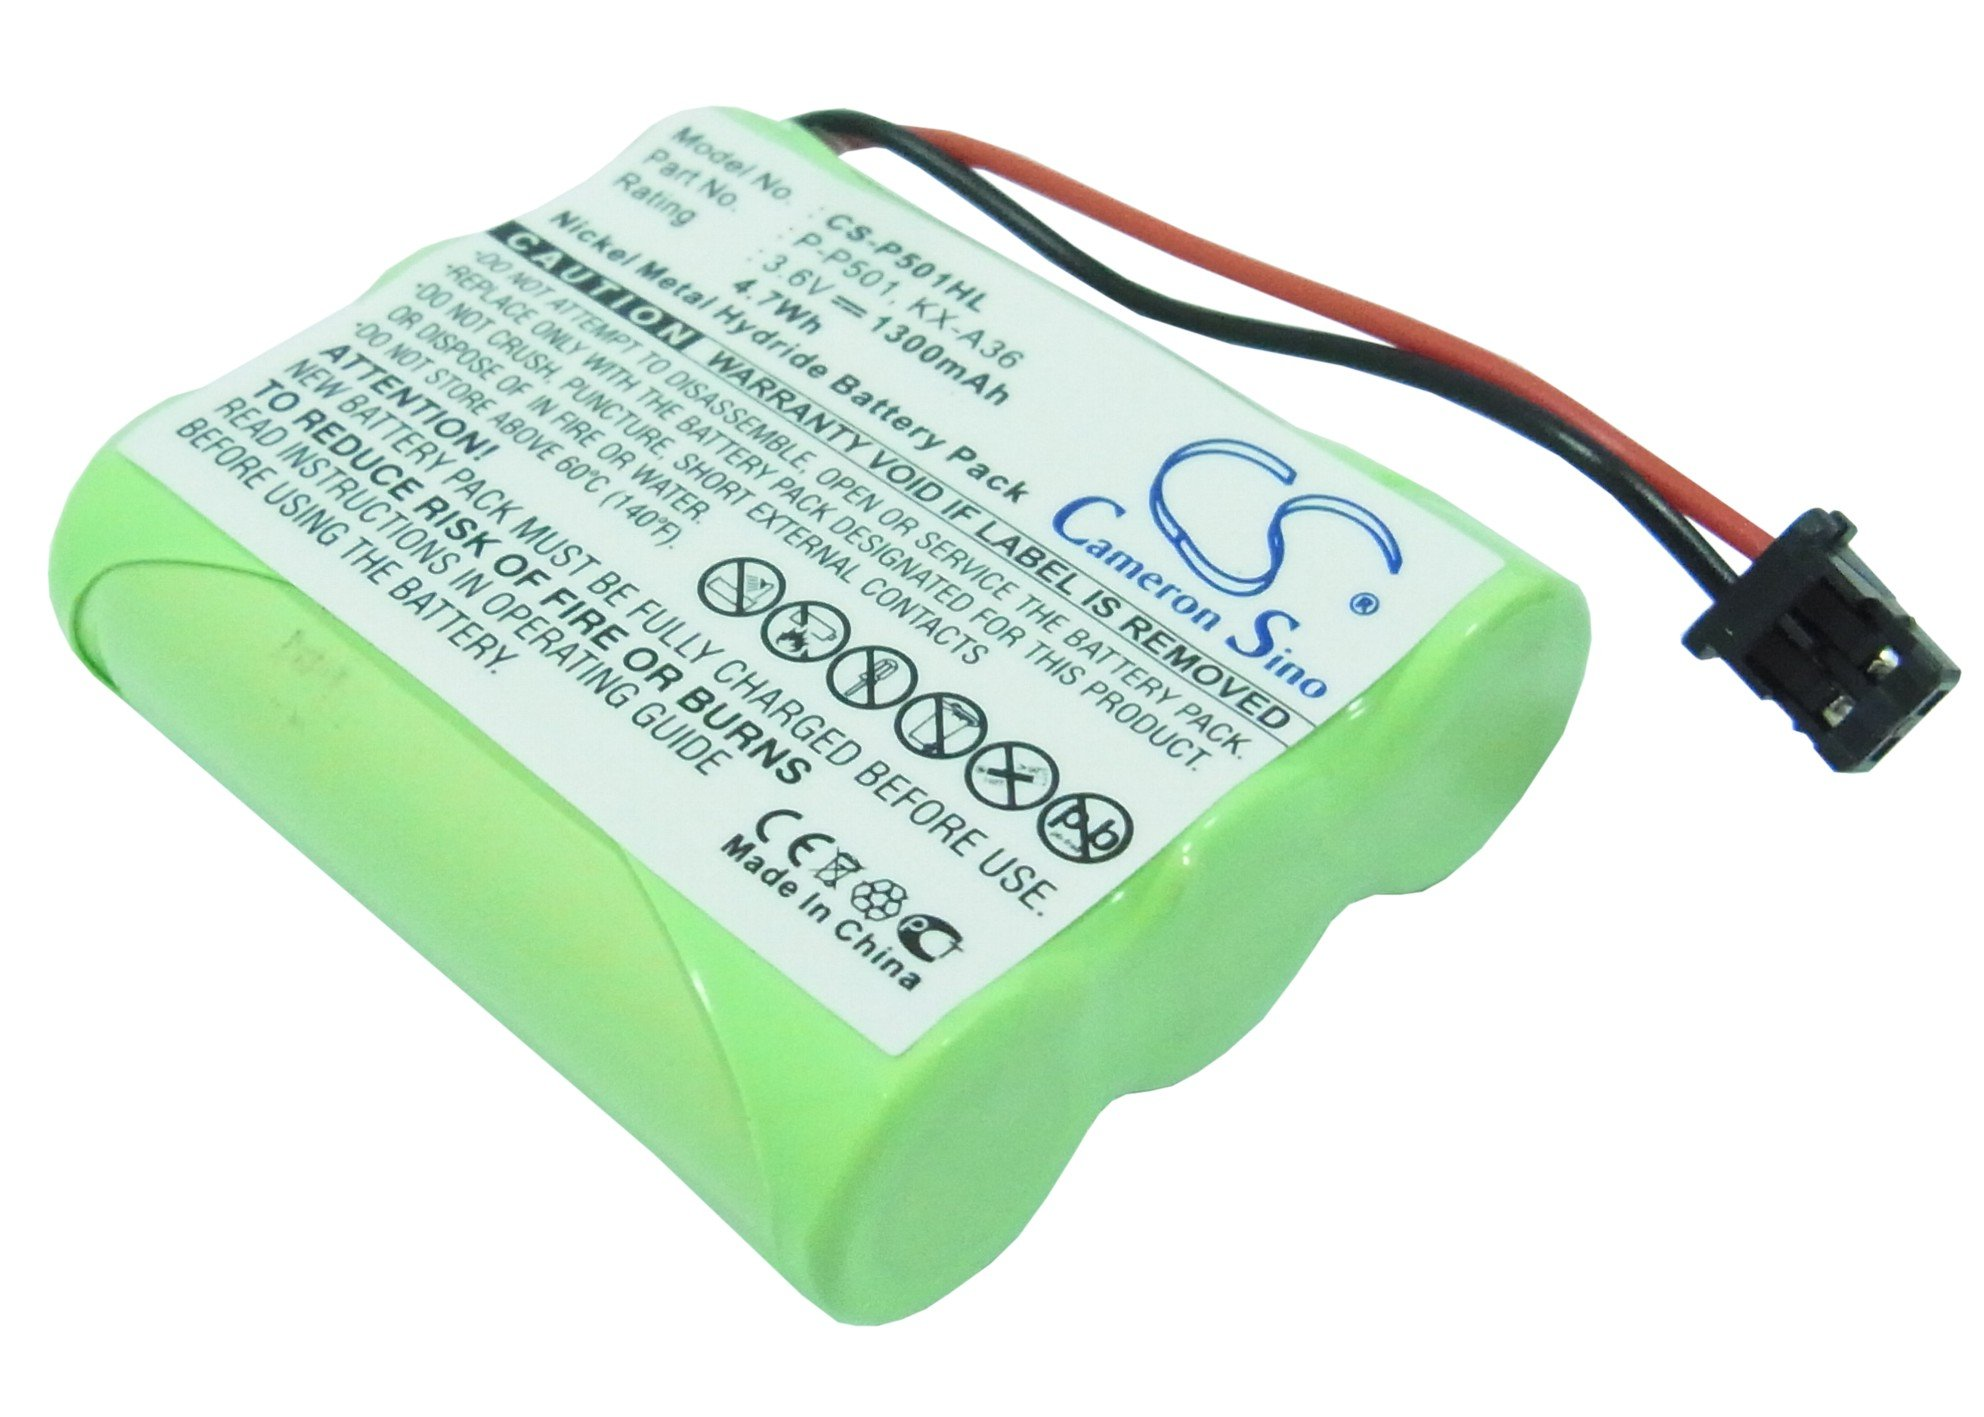 Cameron Sino 1300mAh Replacement Battery for Uniden EXT1160